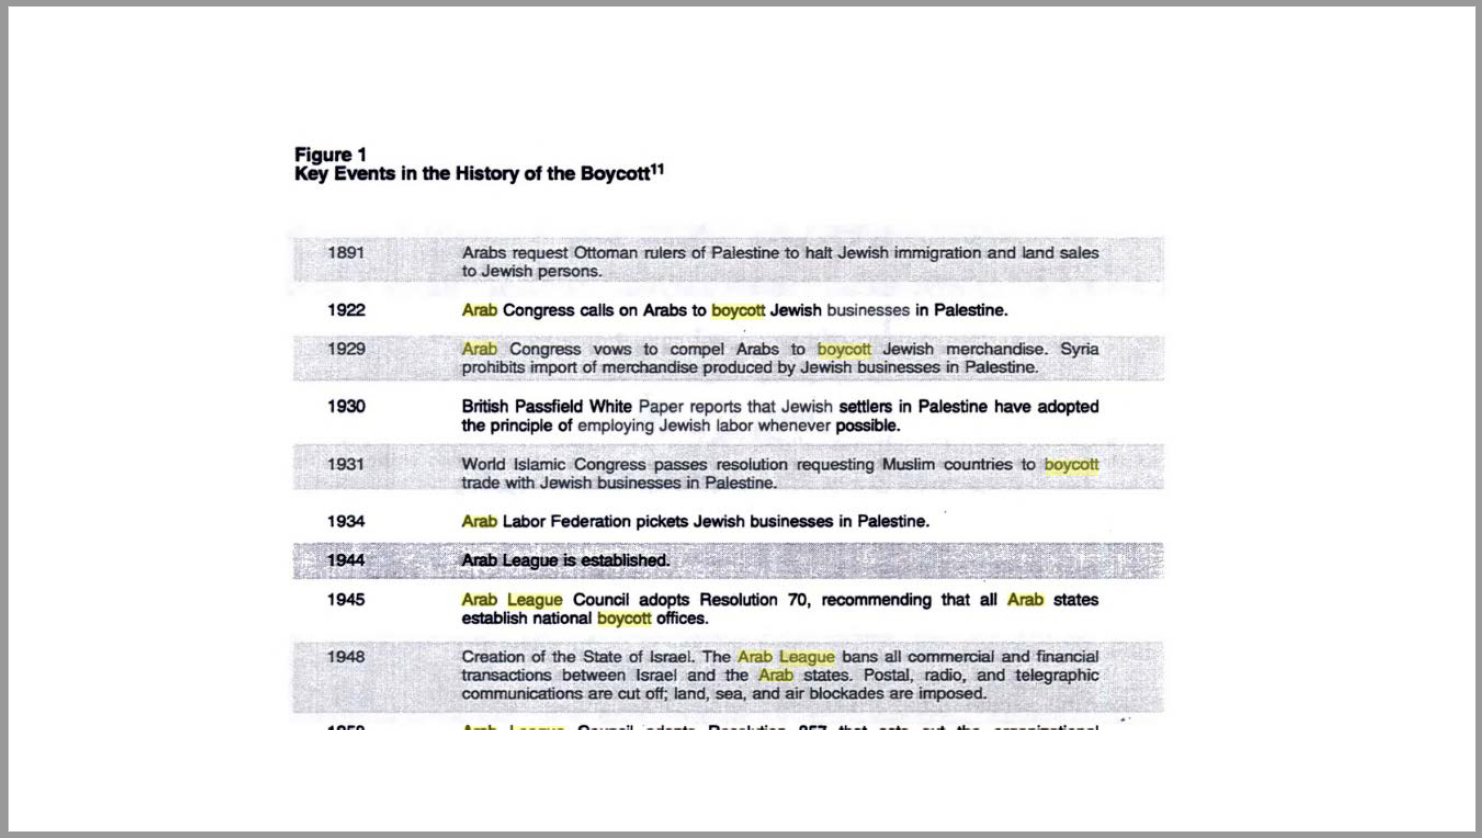 bds-history-slide-key-events-in-history-of-boycott